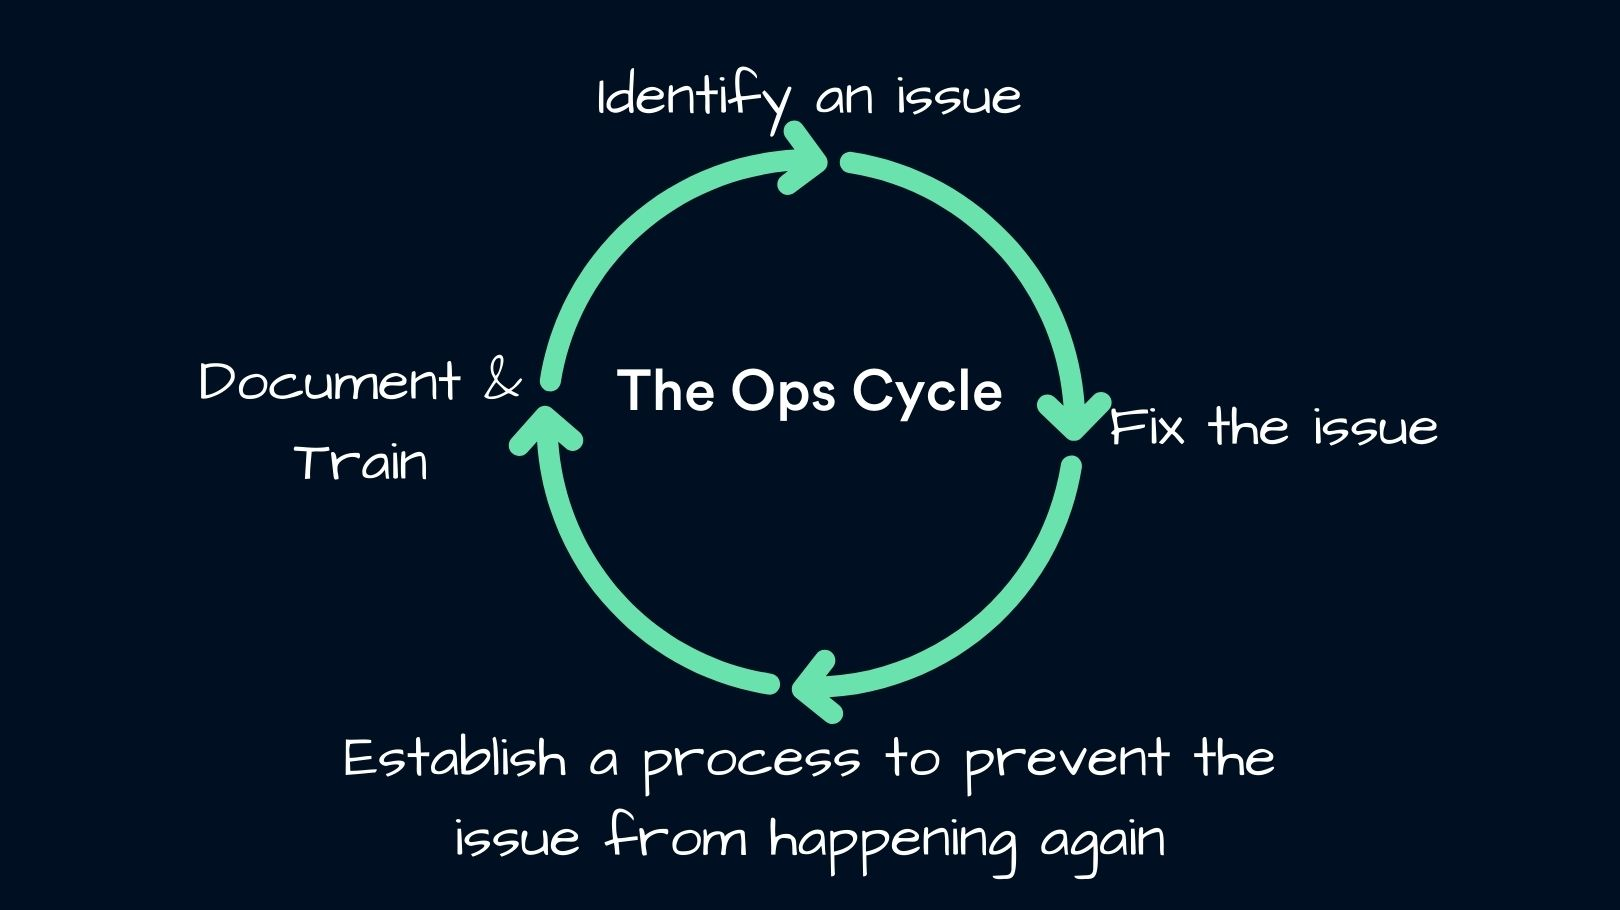 The ops improvement cycle